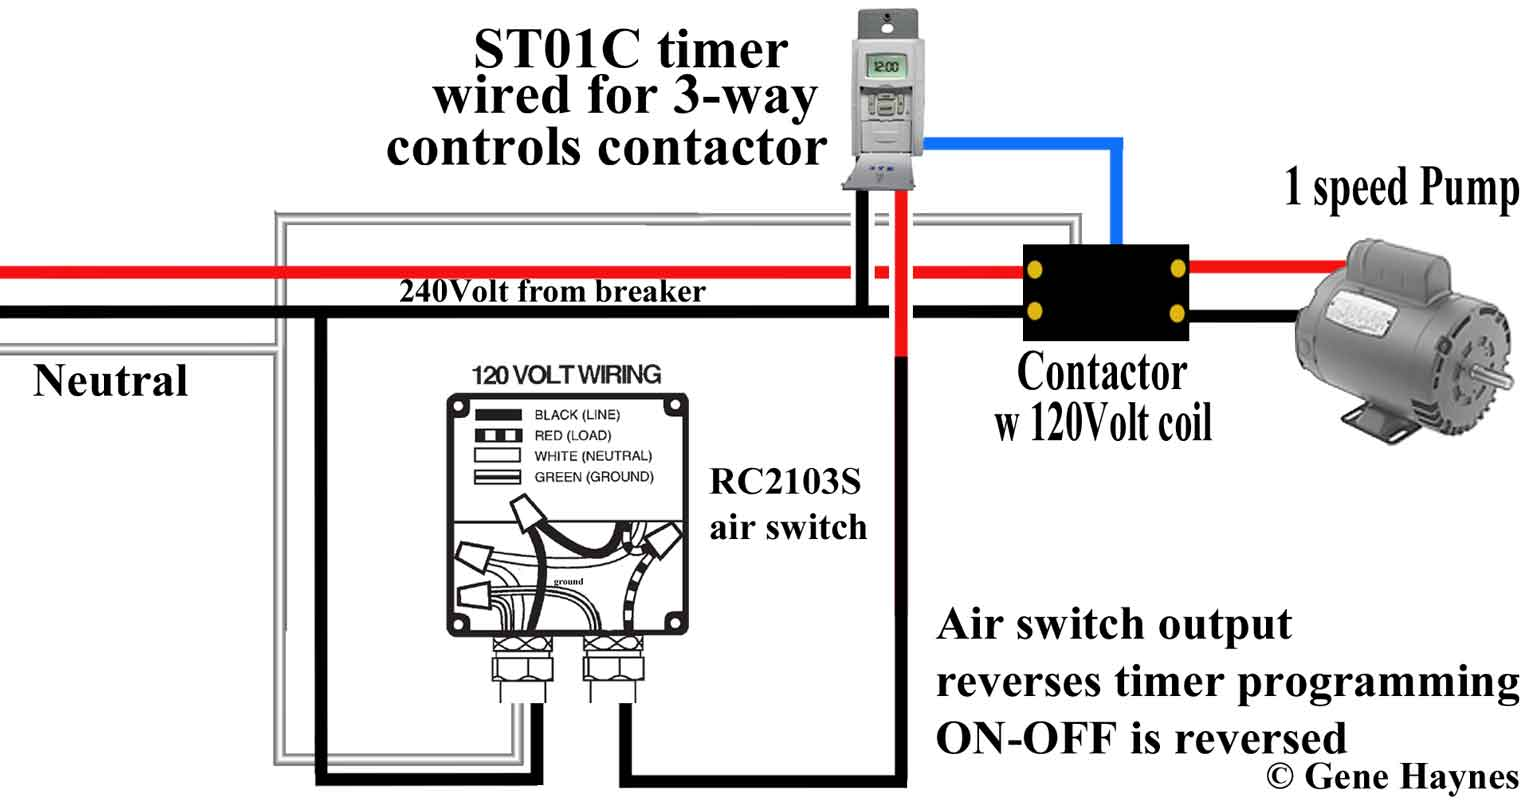 How To Wire Water Heater With Two Switches 4 Pole Switch Wiring Diagram Use St01c For Way Timer St01 24 Volt Dc Photoeye Convert Single Into 3 Using Add A